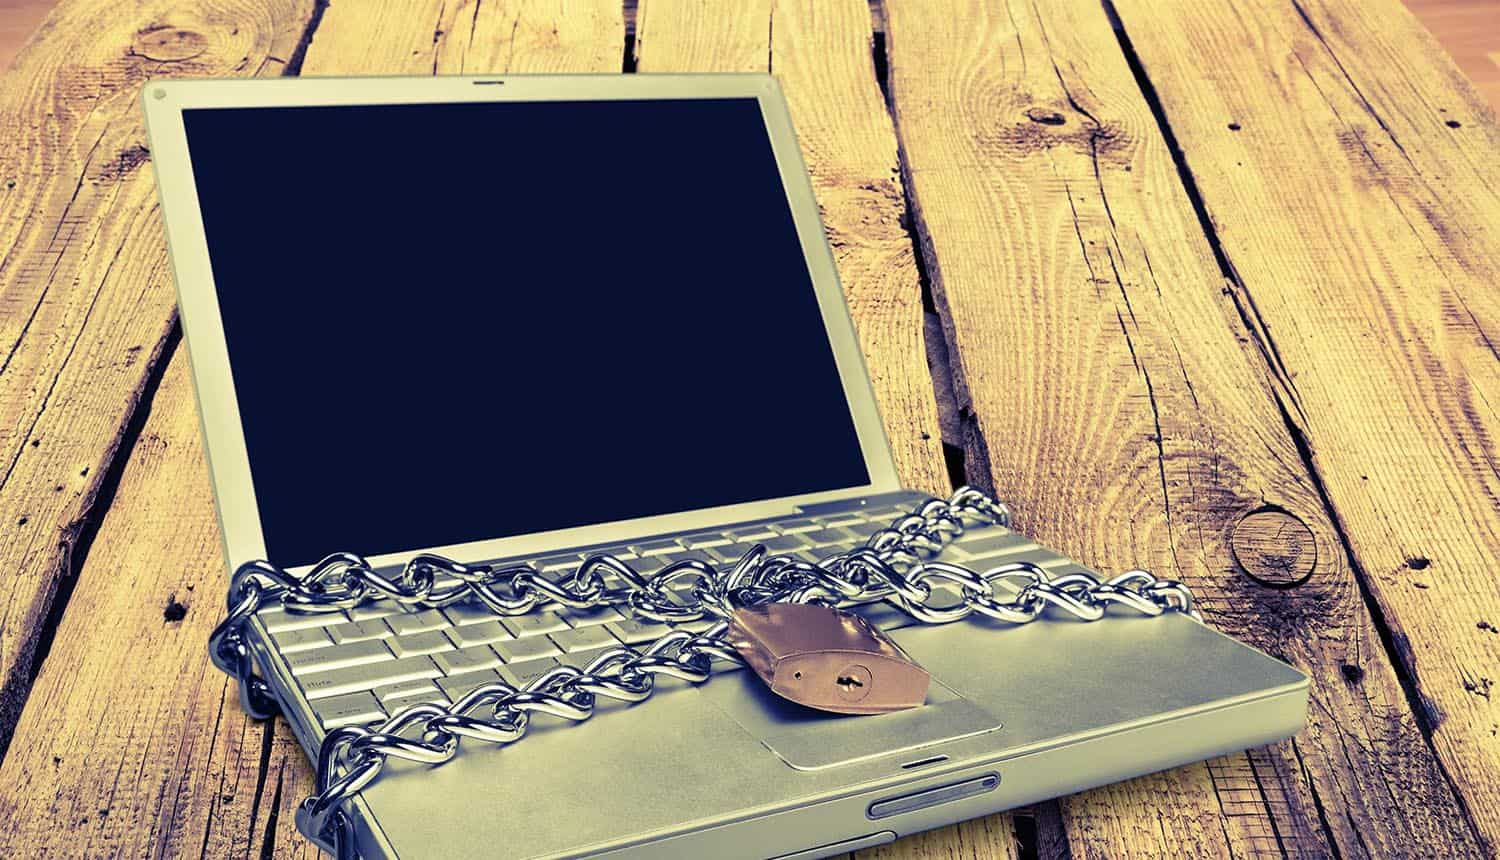 Chain and lock over laptop showing need to secure online education